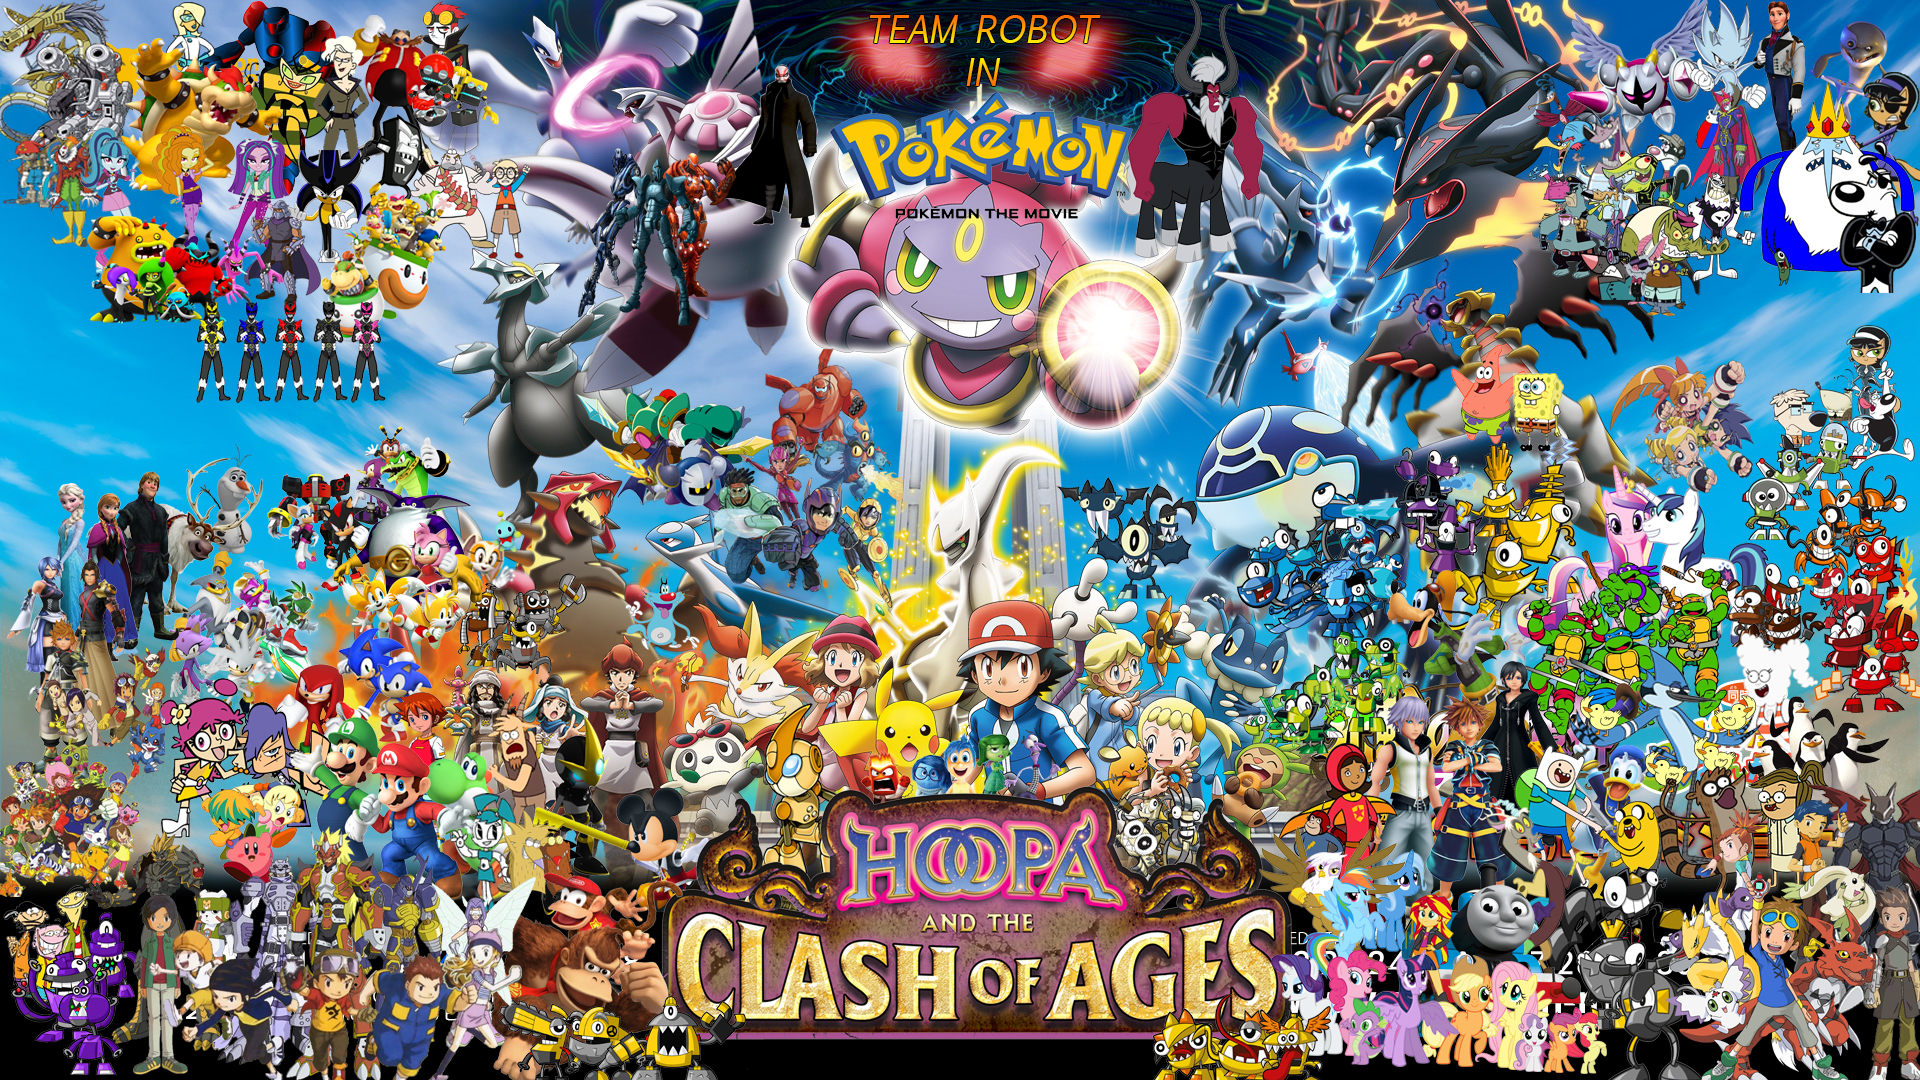 team robot in pokémon the movie hoopa and the clash of ages